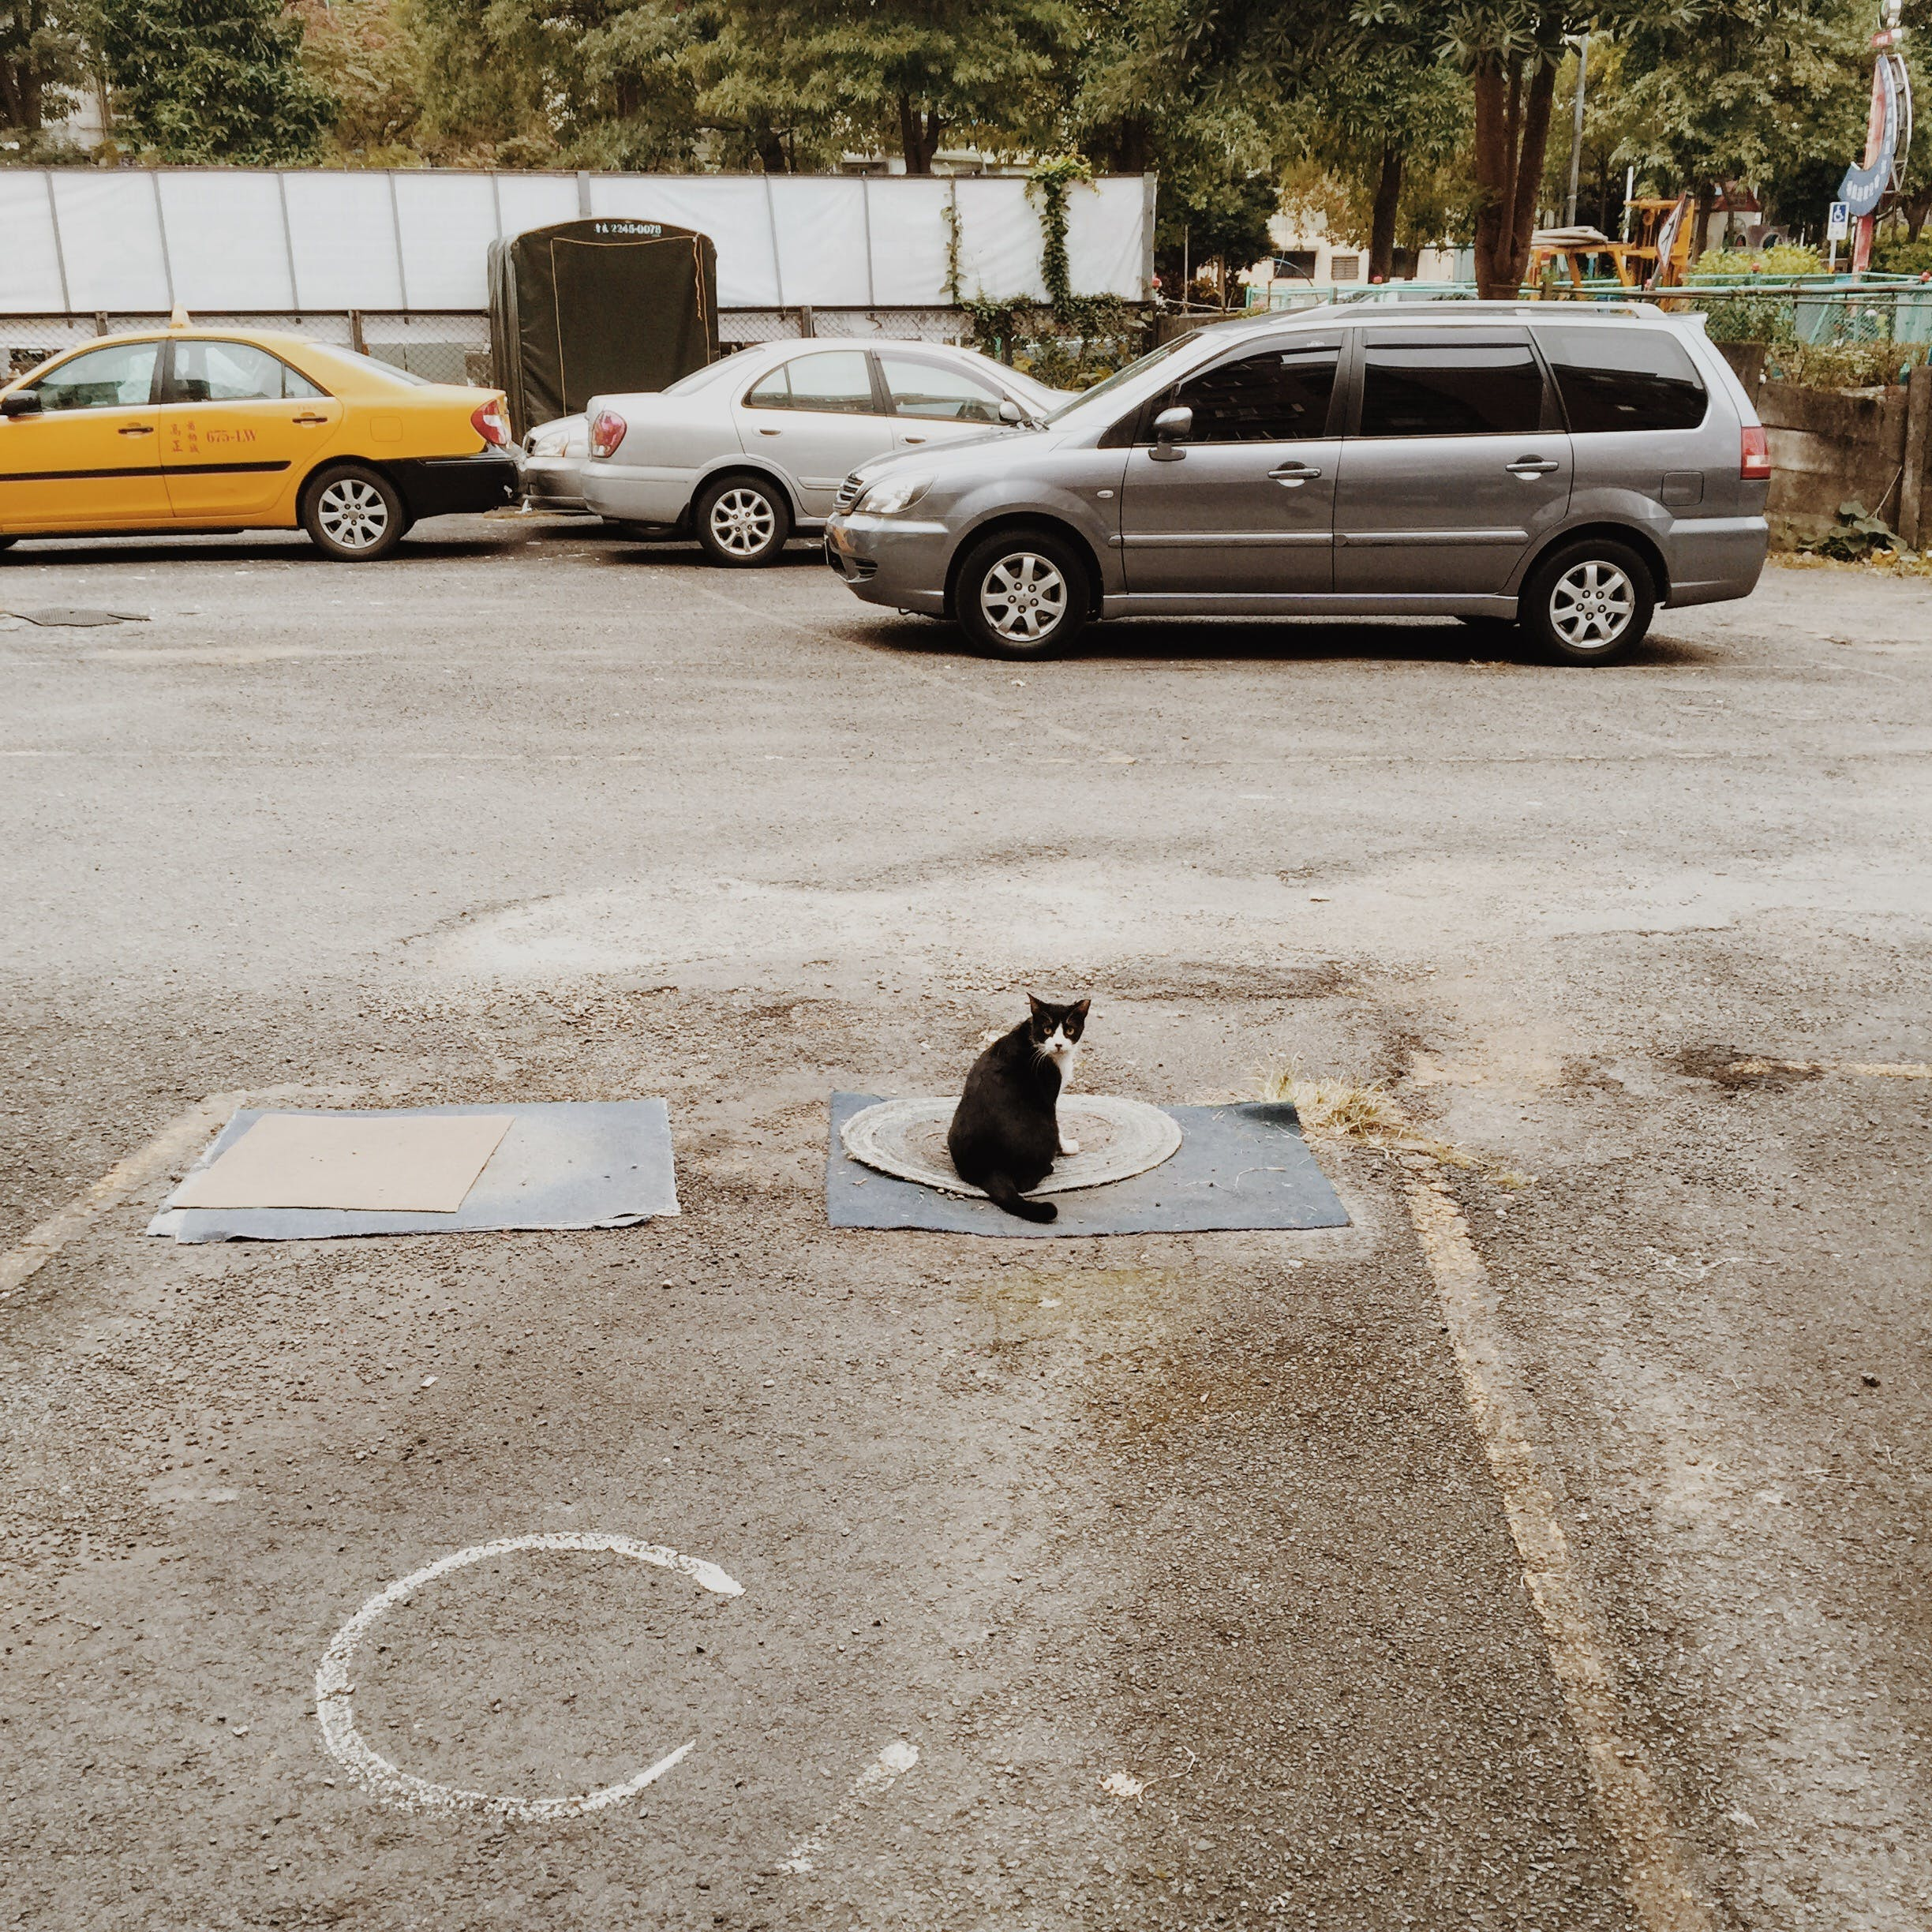 Black and White Cat on the Mat in a Distance of Gray Suv